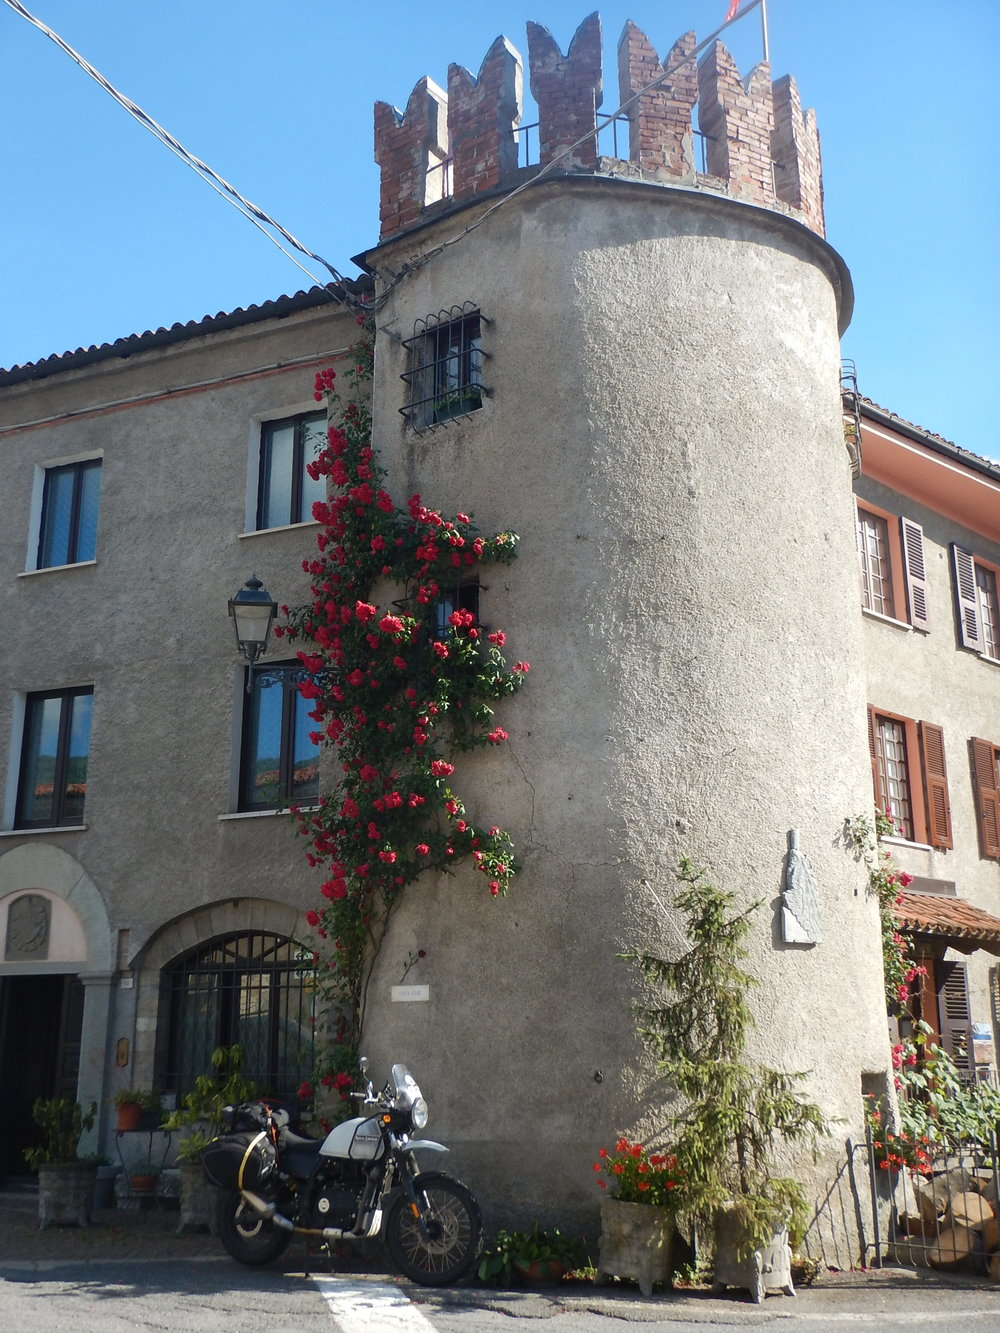 PortaRose guest house in Garessio, Italy. The legend of love and roses continue. . . .